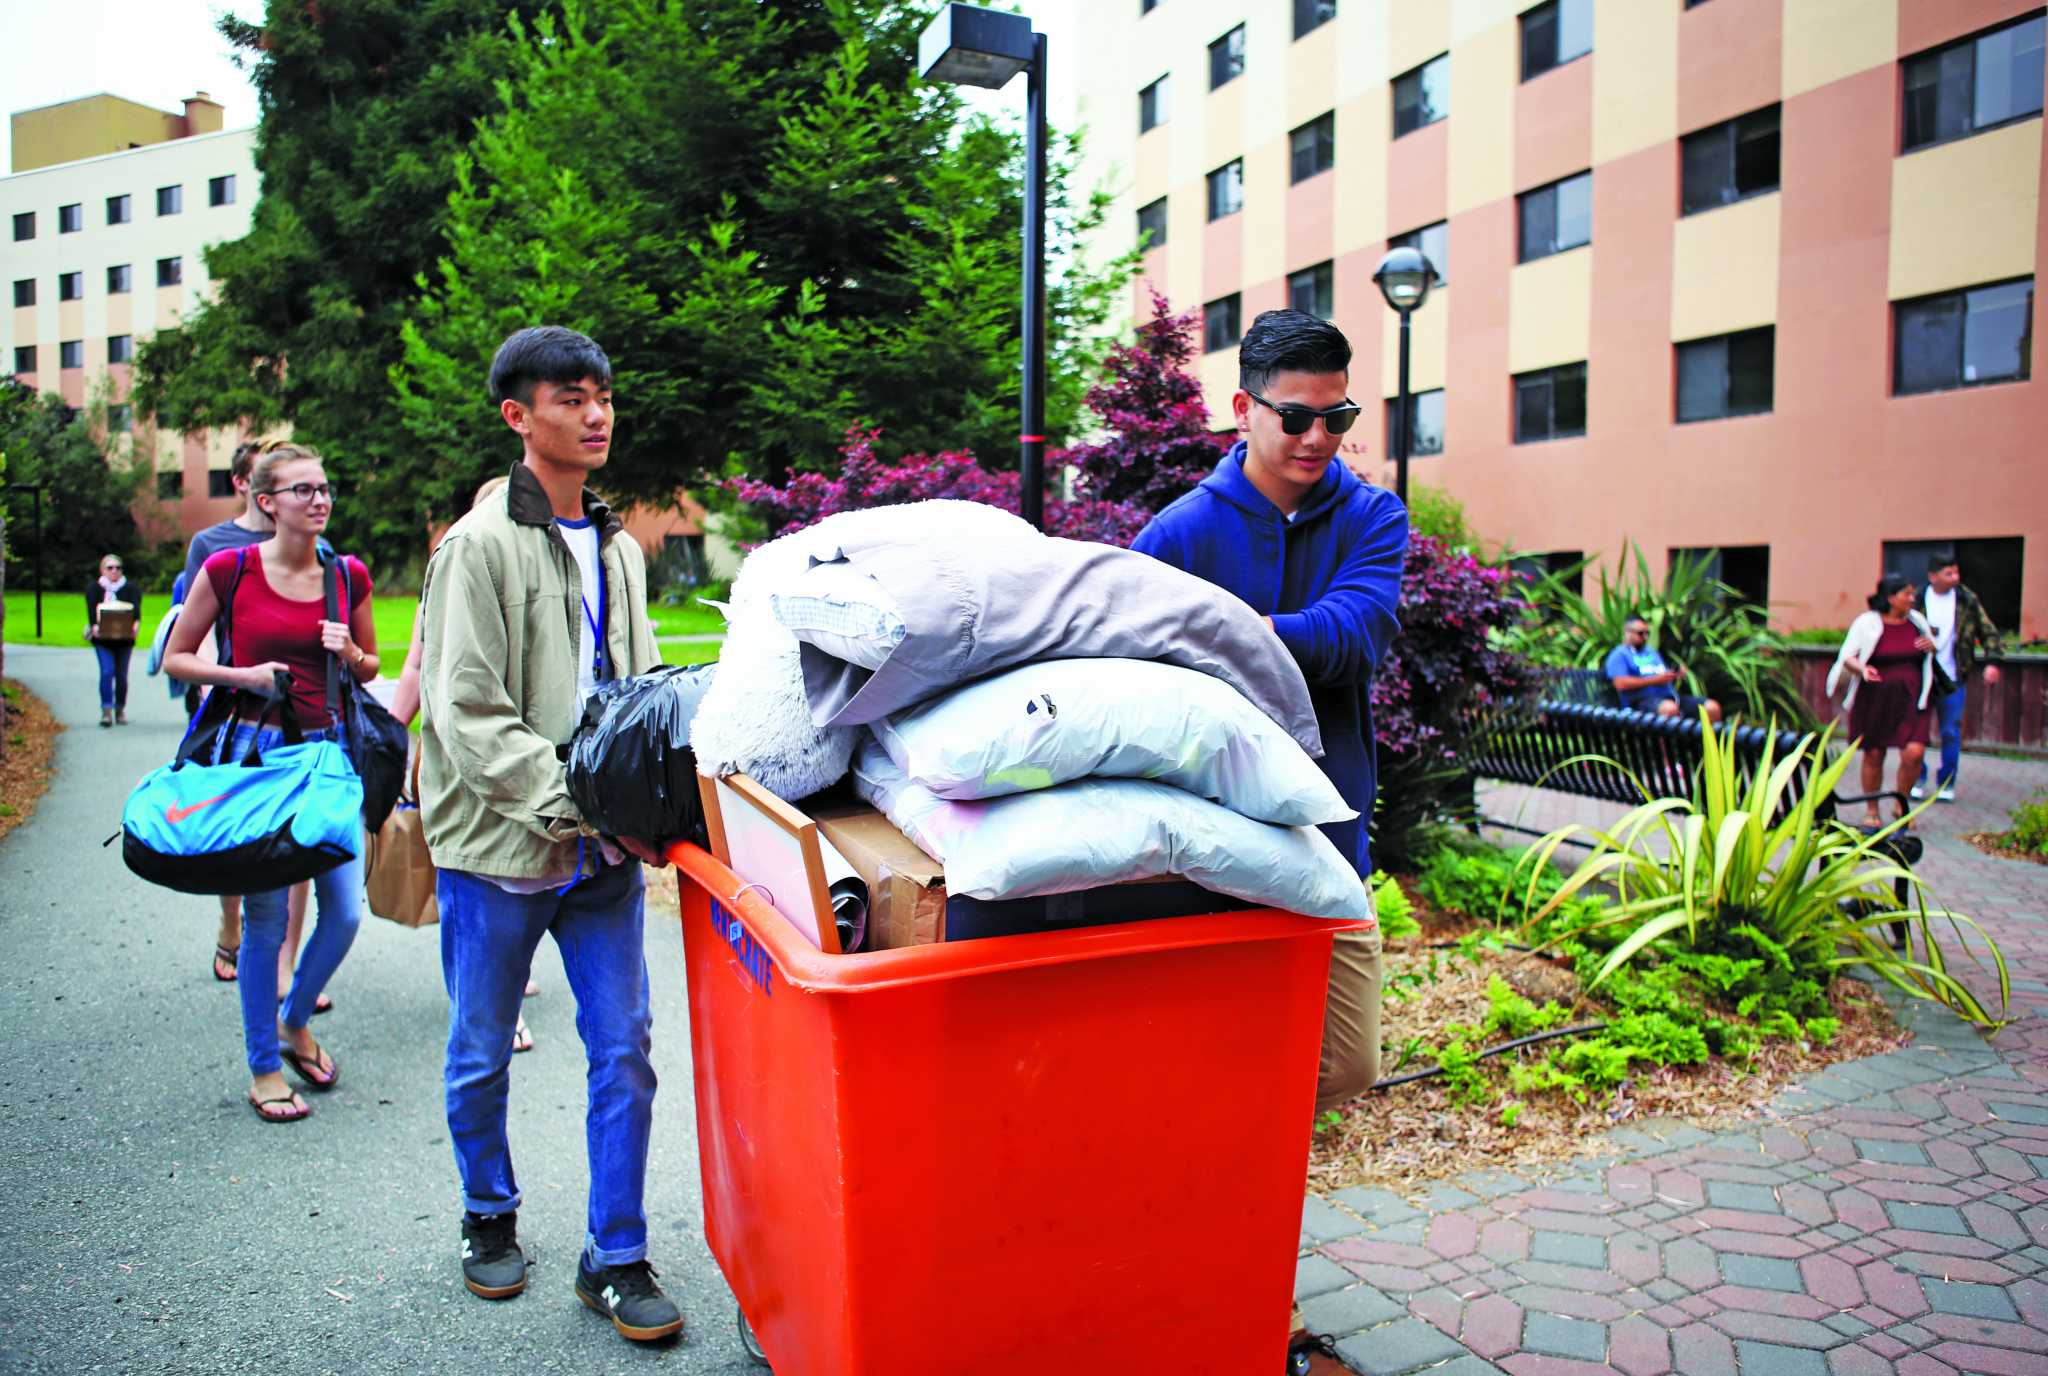 People move a cart into Mary Park Hall during freshmen move-in day at San Francisco State on Saturday, August 19, 2017. (Mira Laing/Golden Gate Xpress)